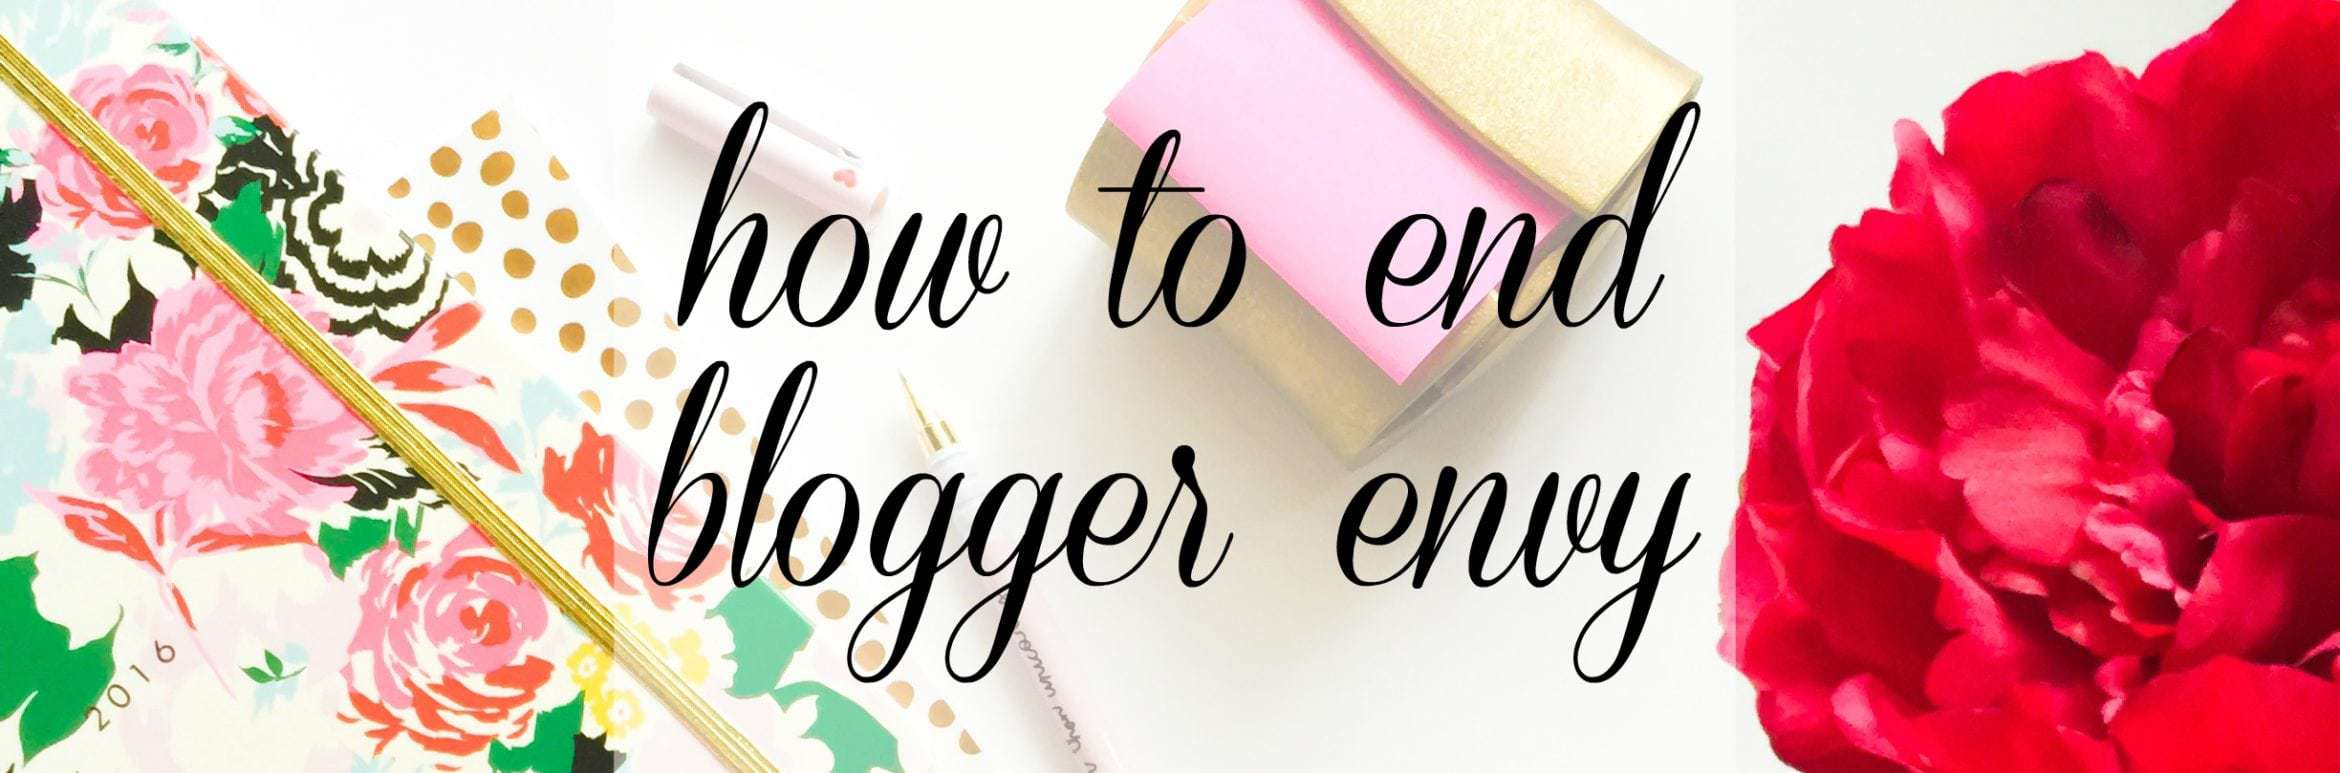 Tips on how to end blogger envy